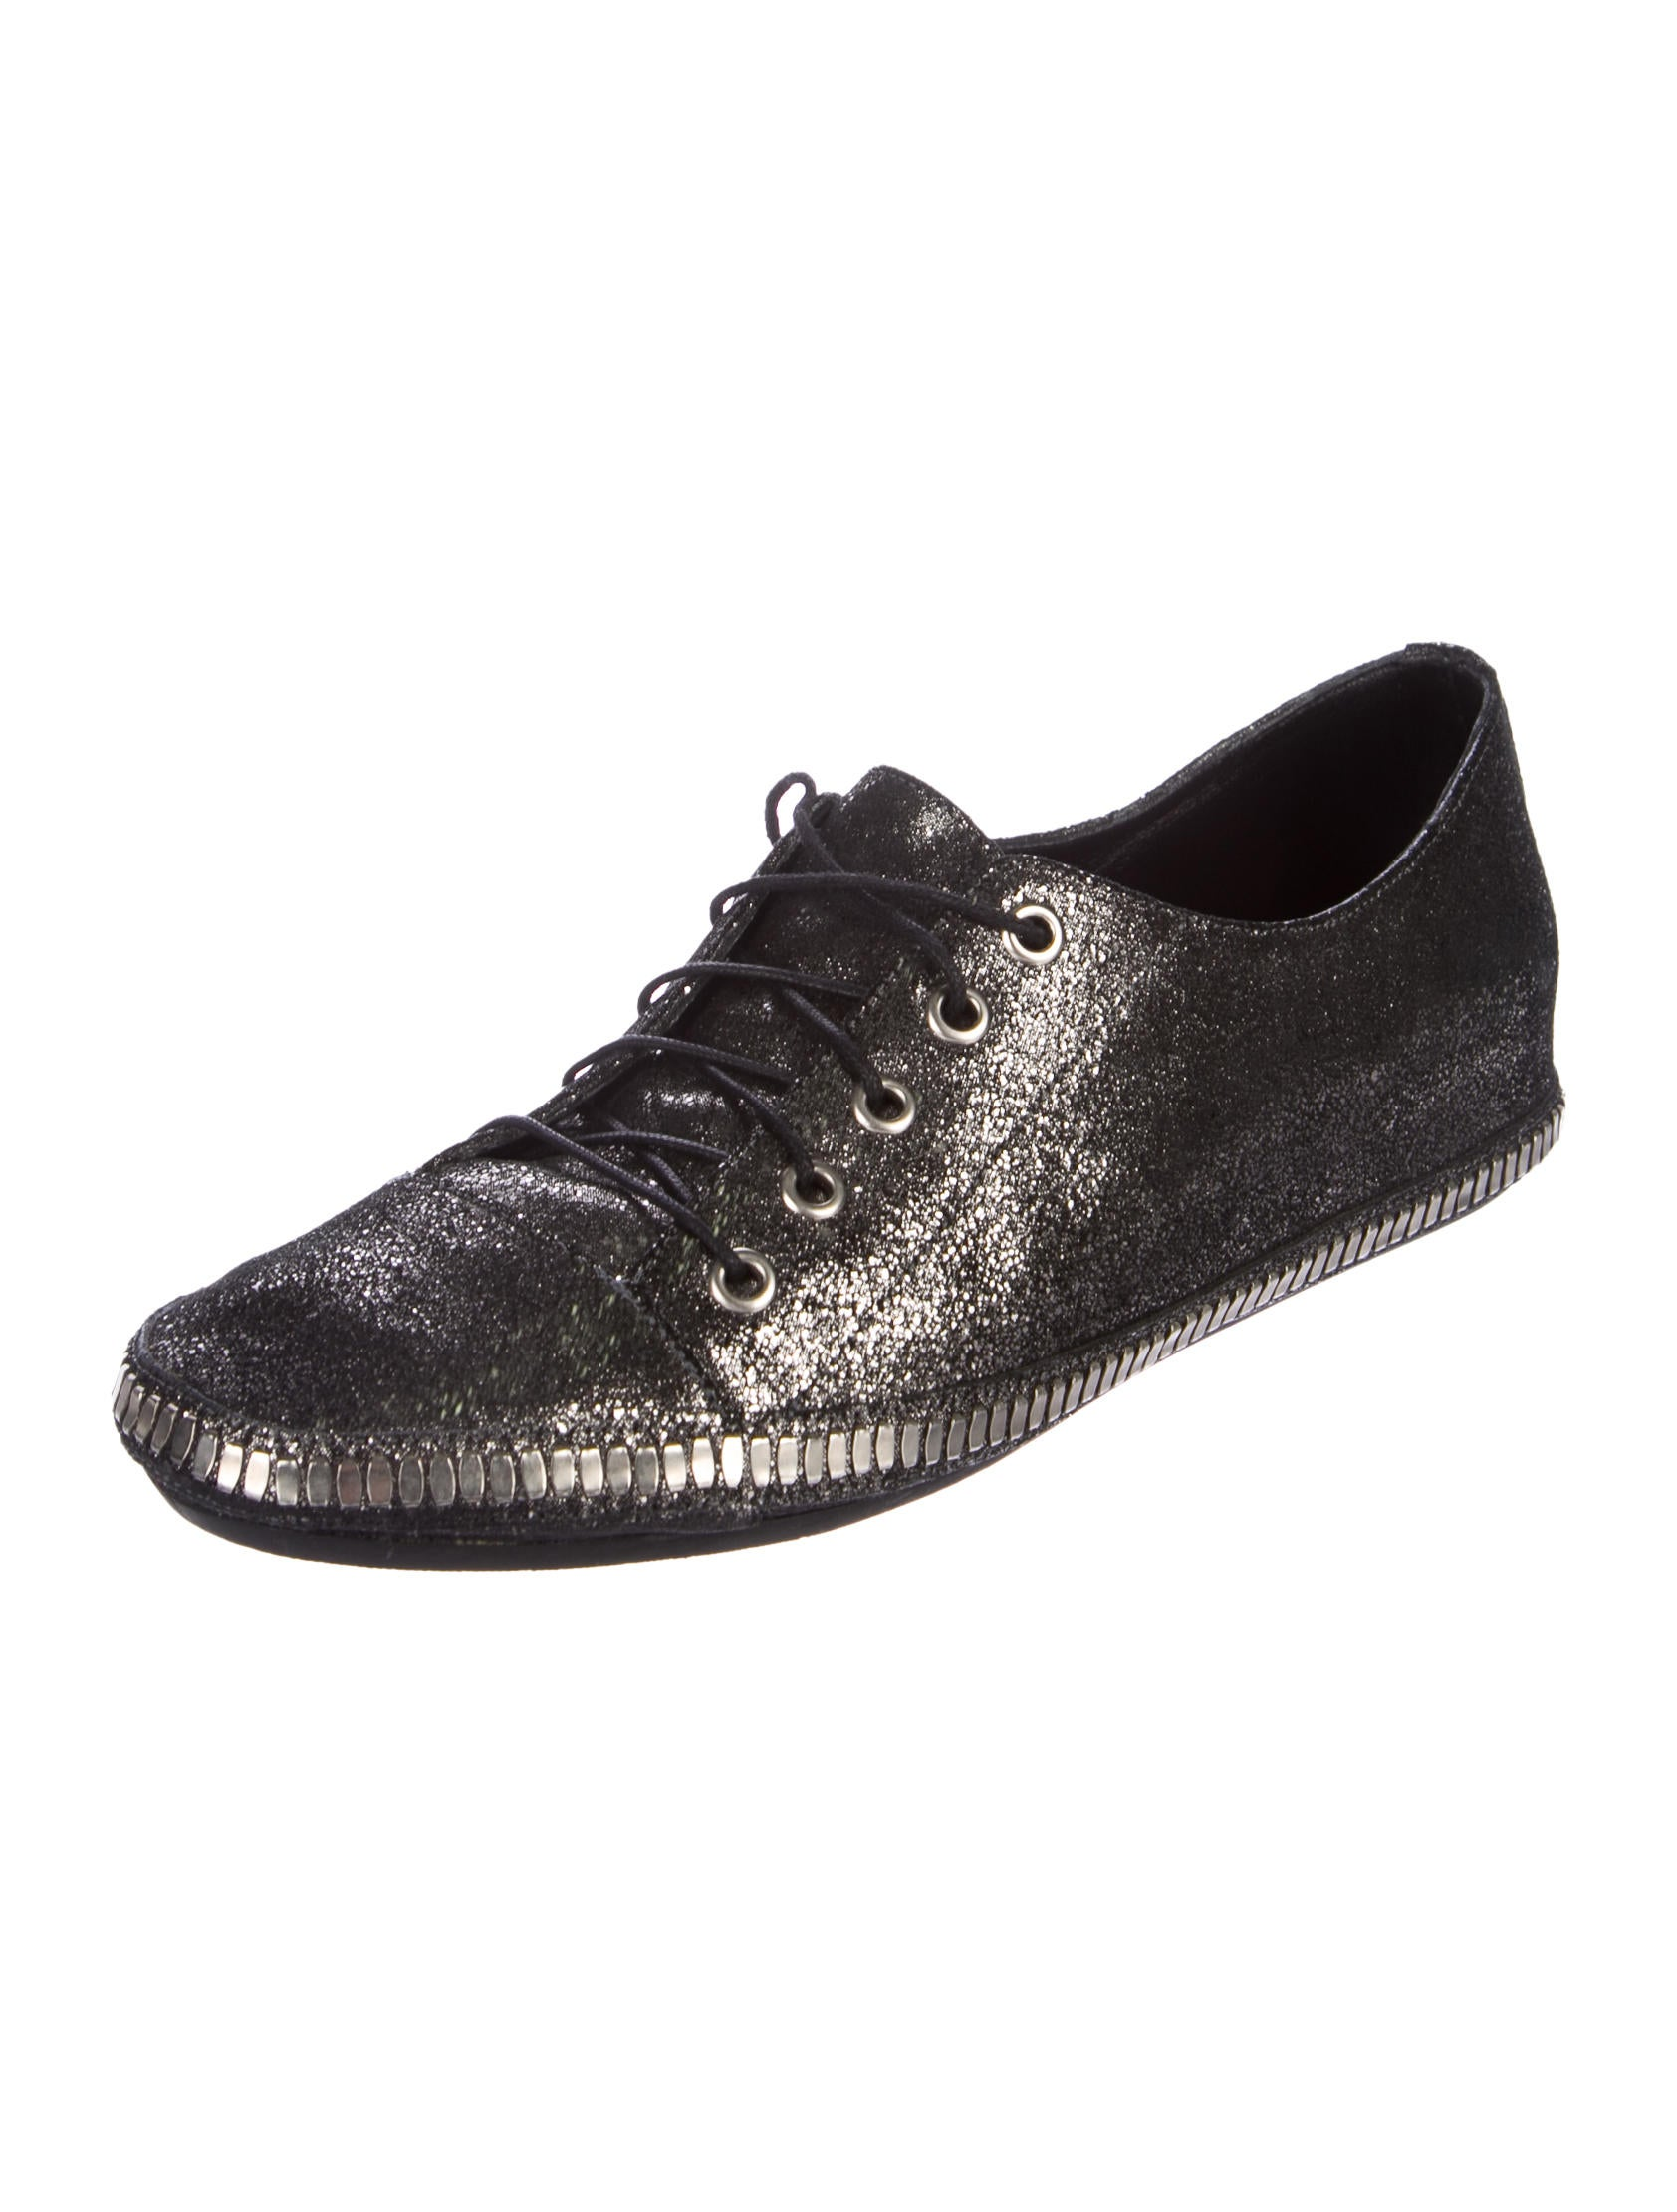 Calleen Cordero Metallic Low-Top Sneakers purchase for sale cheap sale how much clearance official site Rpa4YHh8q